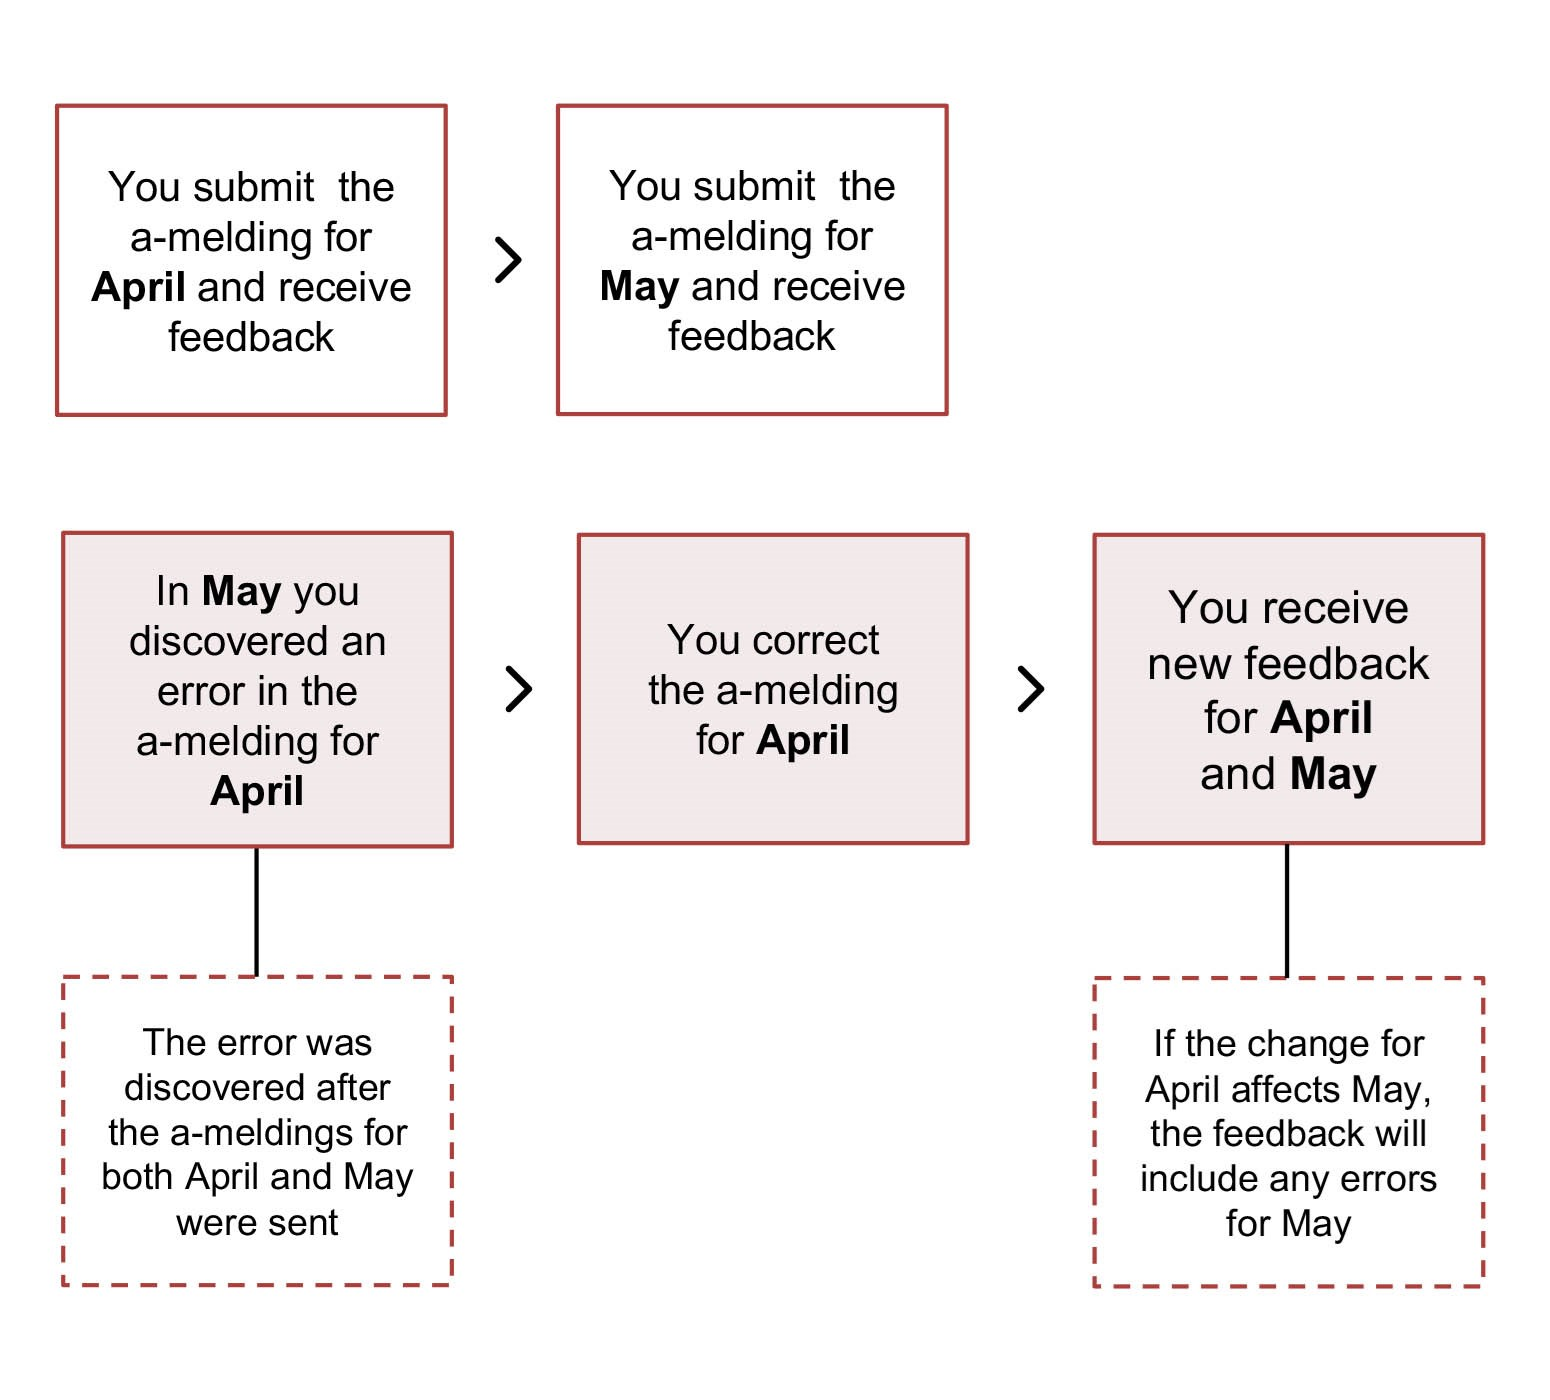 Diagram. You submit a-meldings for April and May and receive feedback. In May, you discover errors in the information for April. You correct for April. You receive new feedback for April and May. The text in the article explains this in more detail.